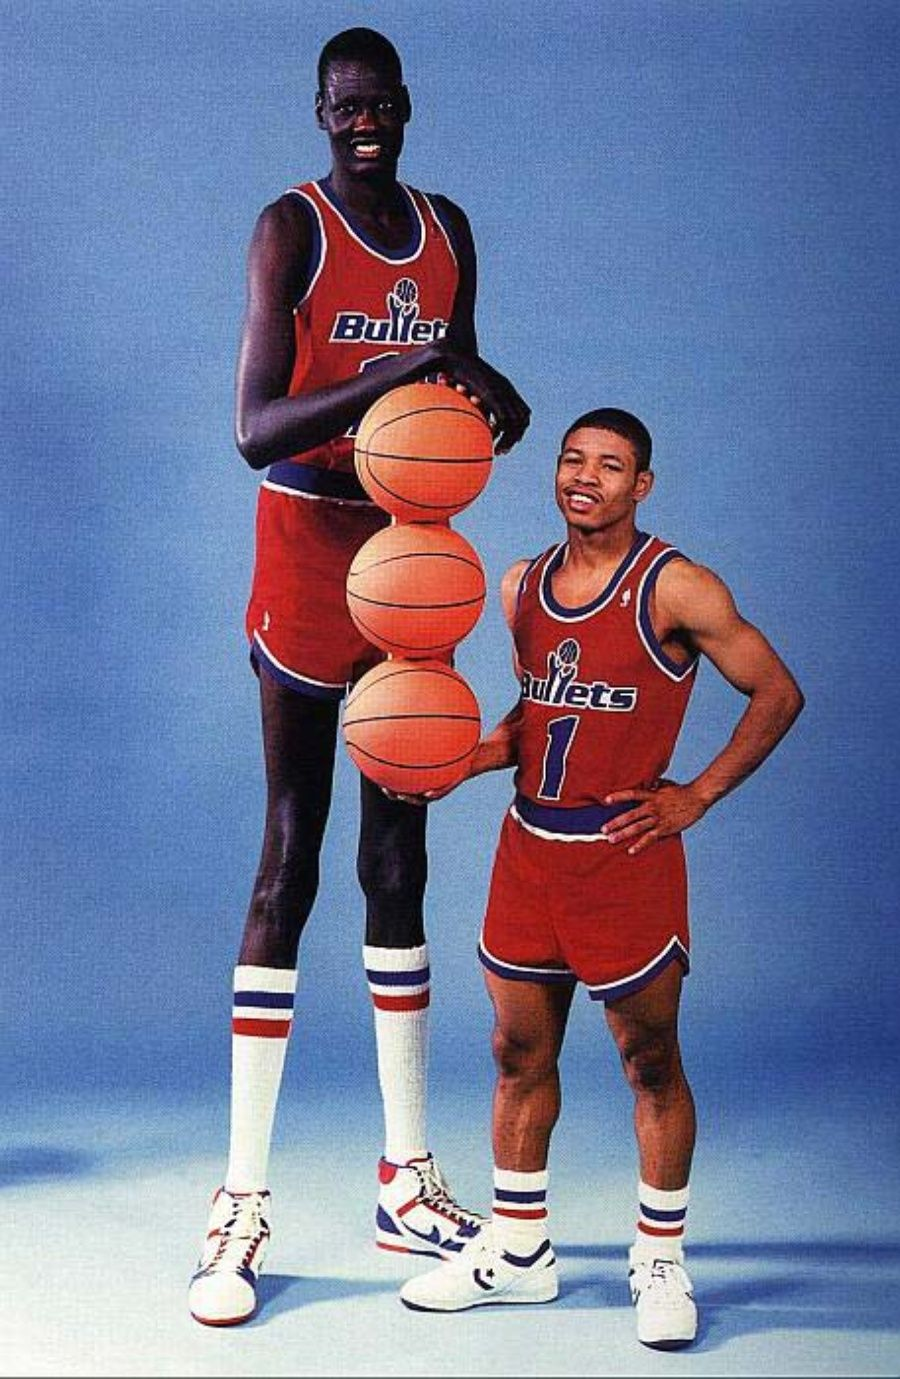 The Tallest And Shortest Players In Nba History Manute Bol And